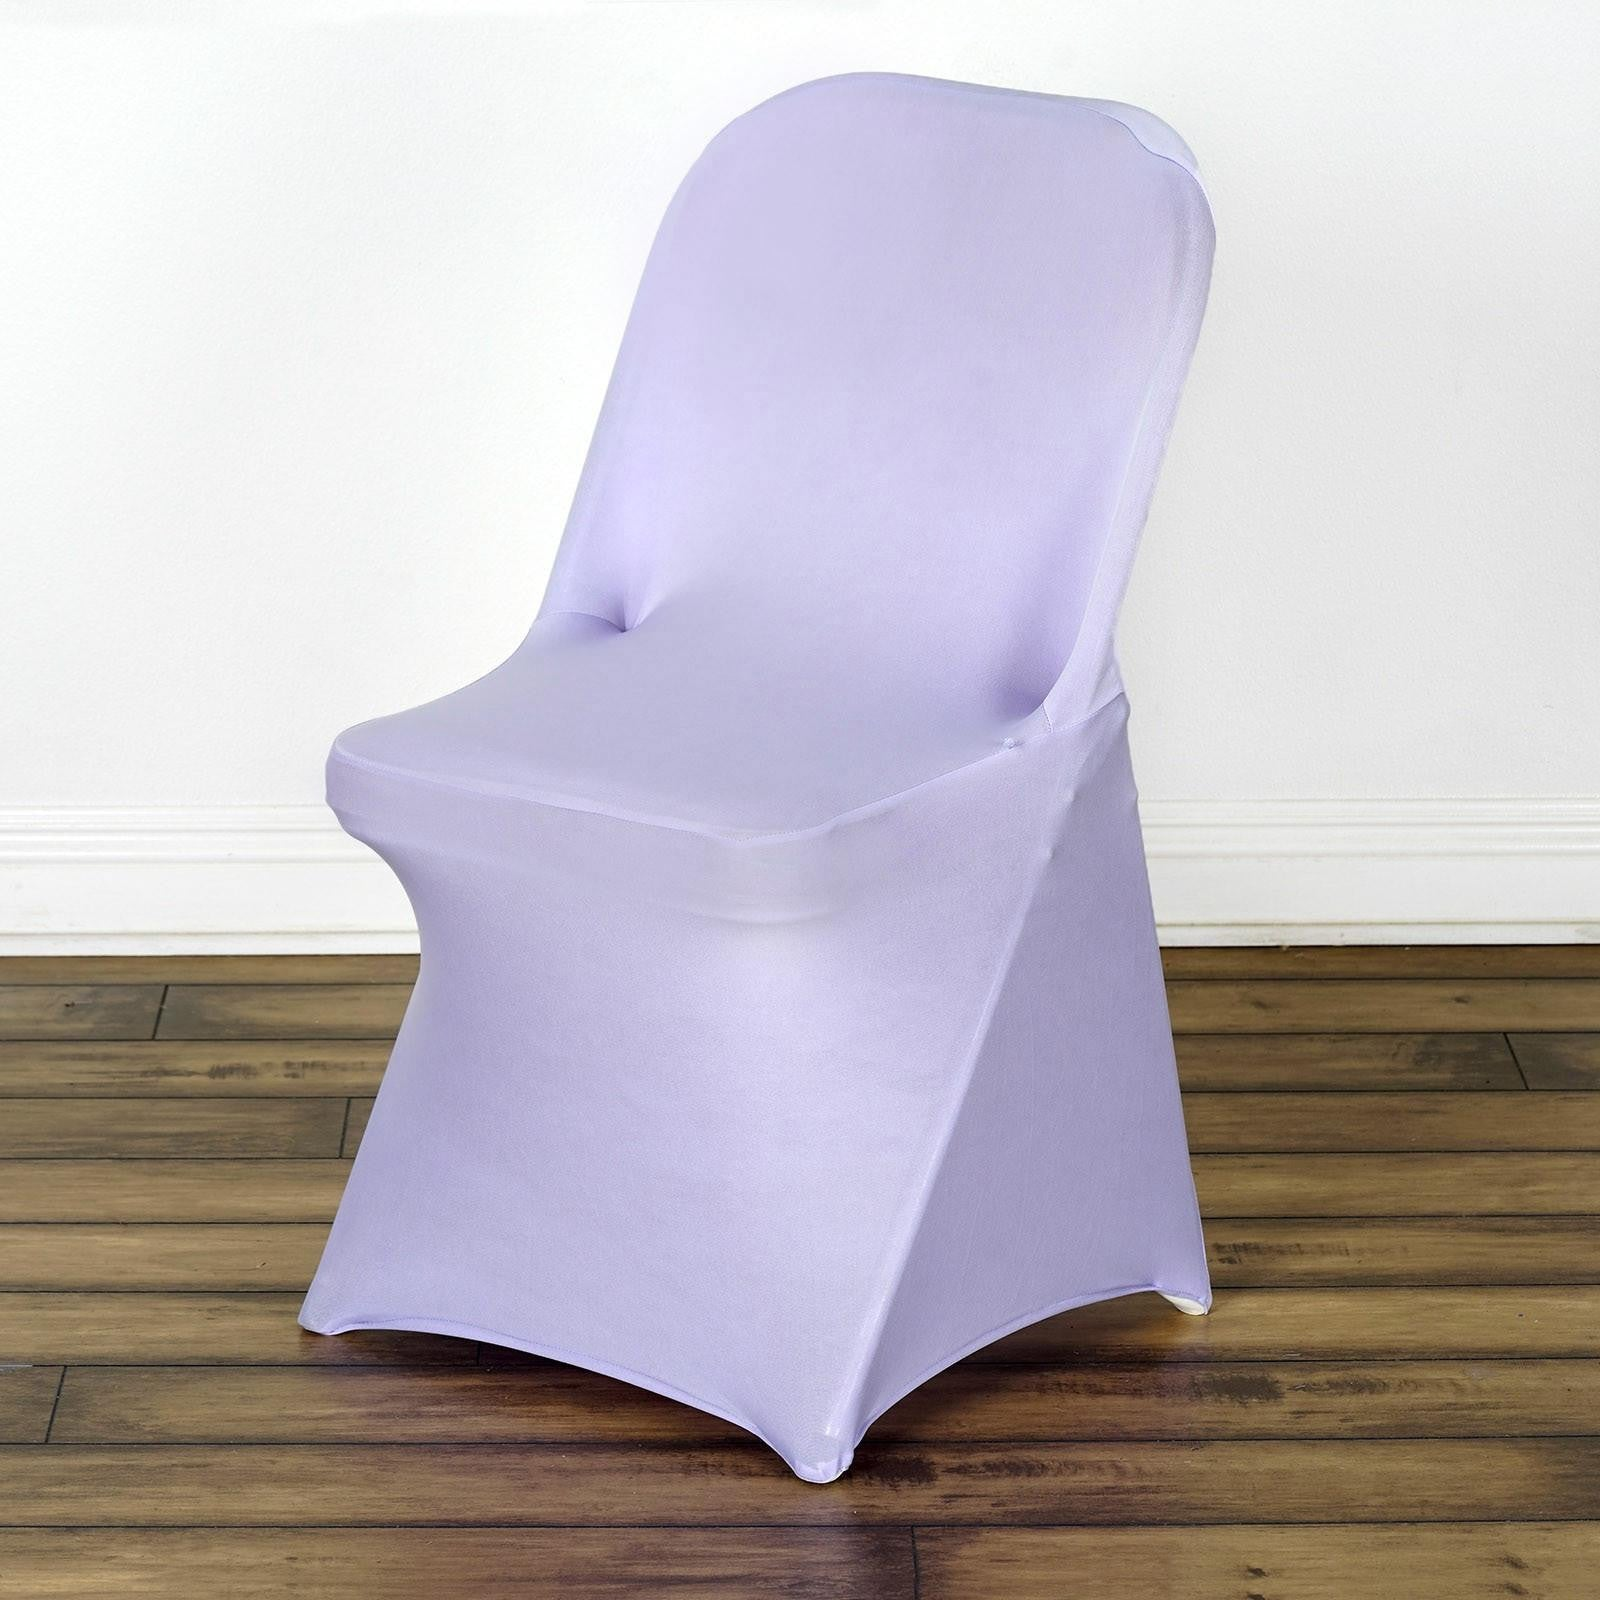 Folding chair covers wholesale under 1 - Folding Chair Covers Wholesale Under 1 4